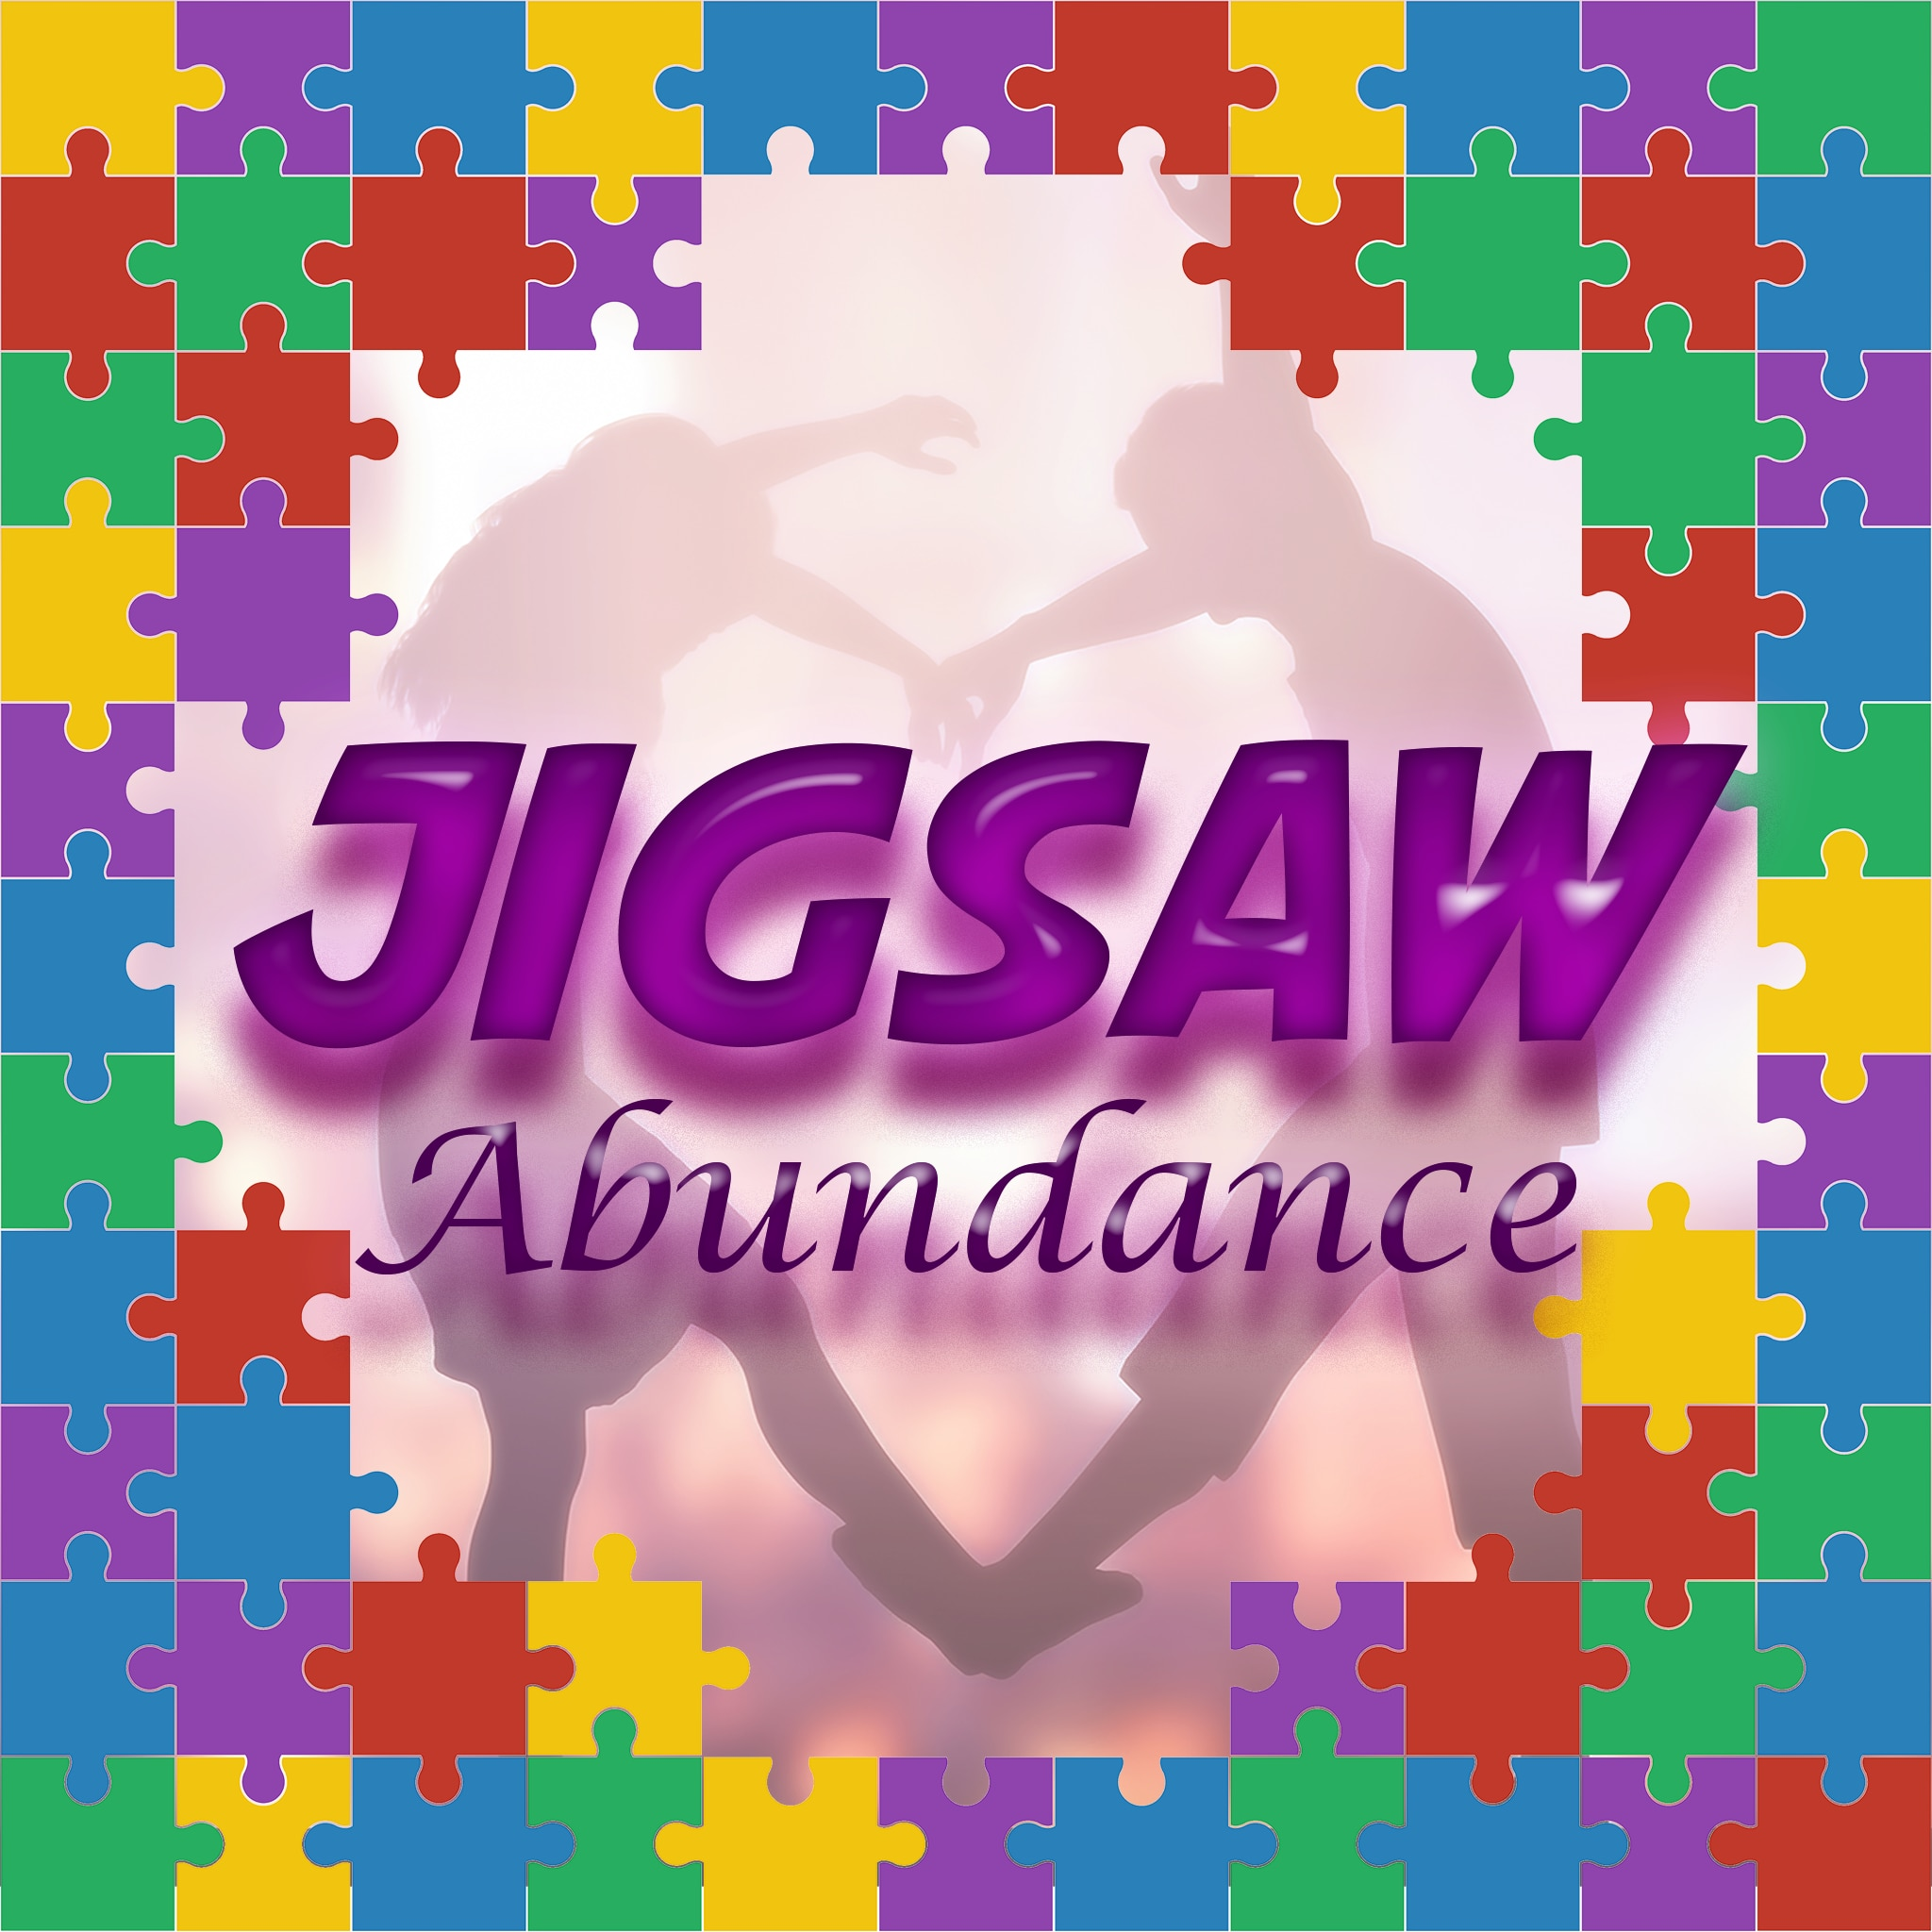 JigSaw Abundance (English/Chinese/Korean/Japanese Ver.)